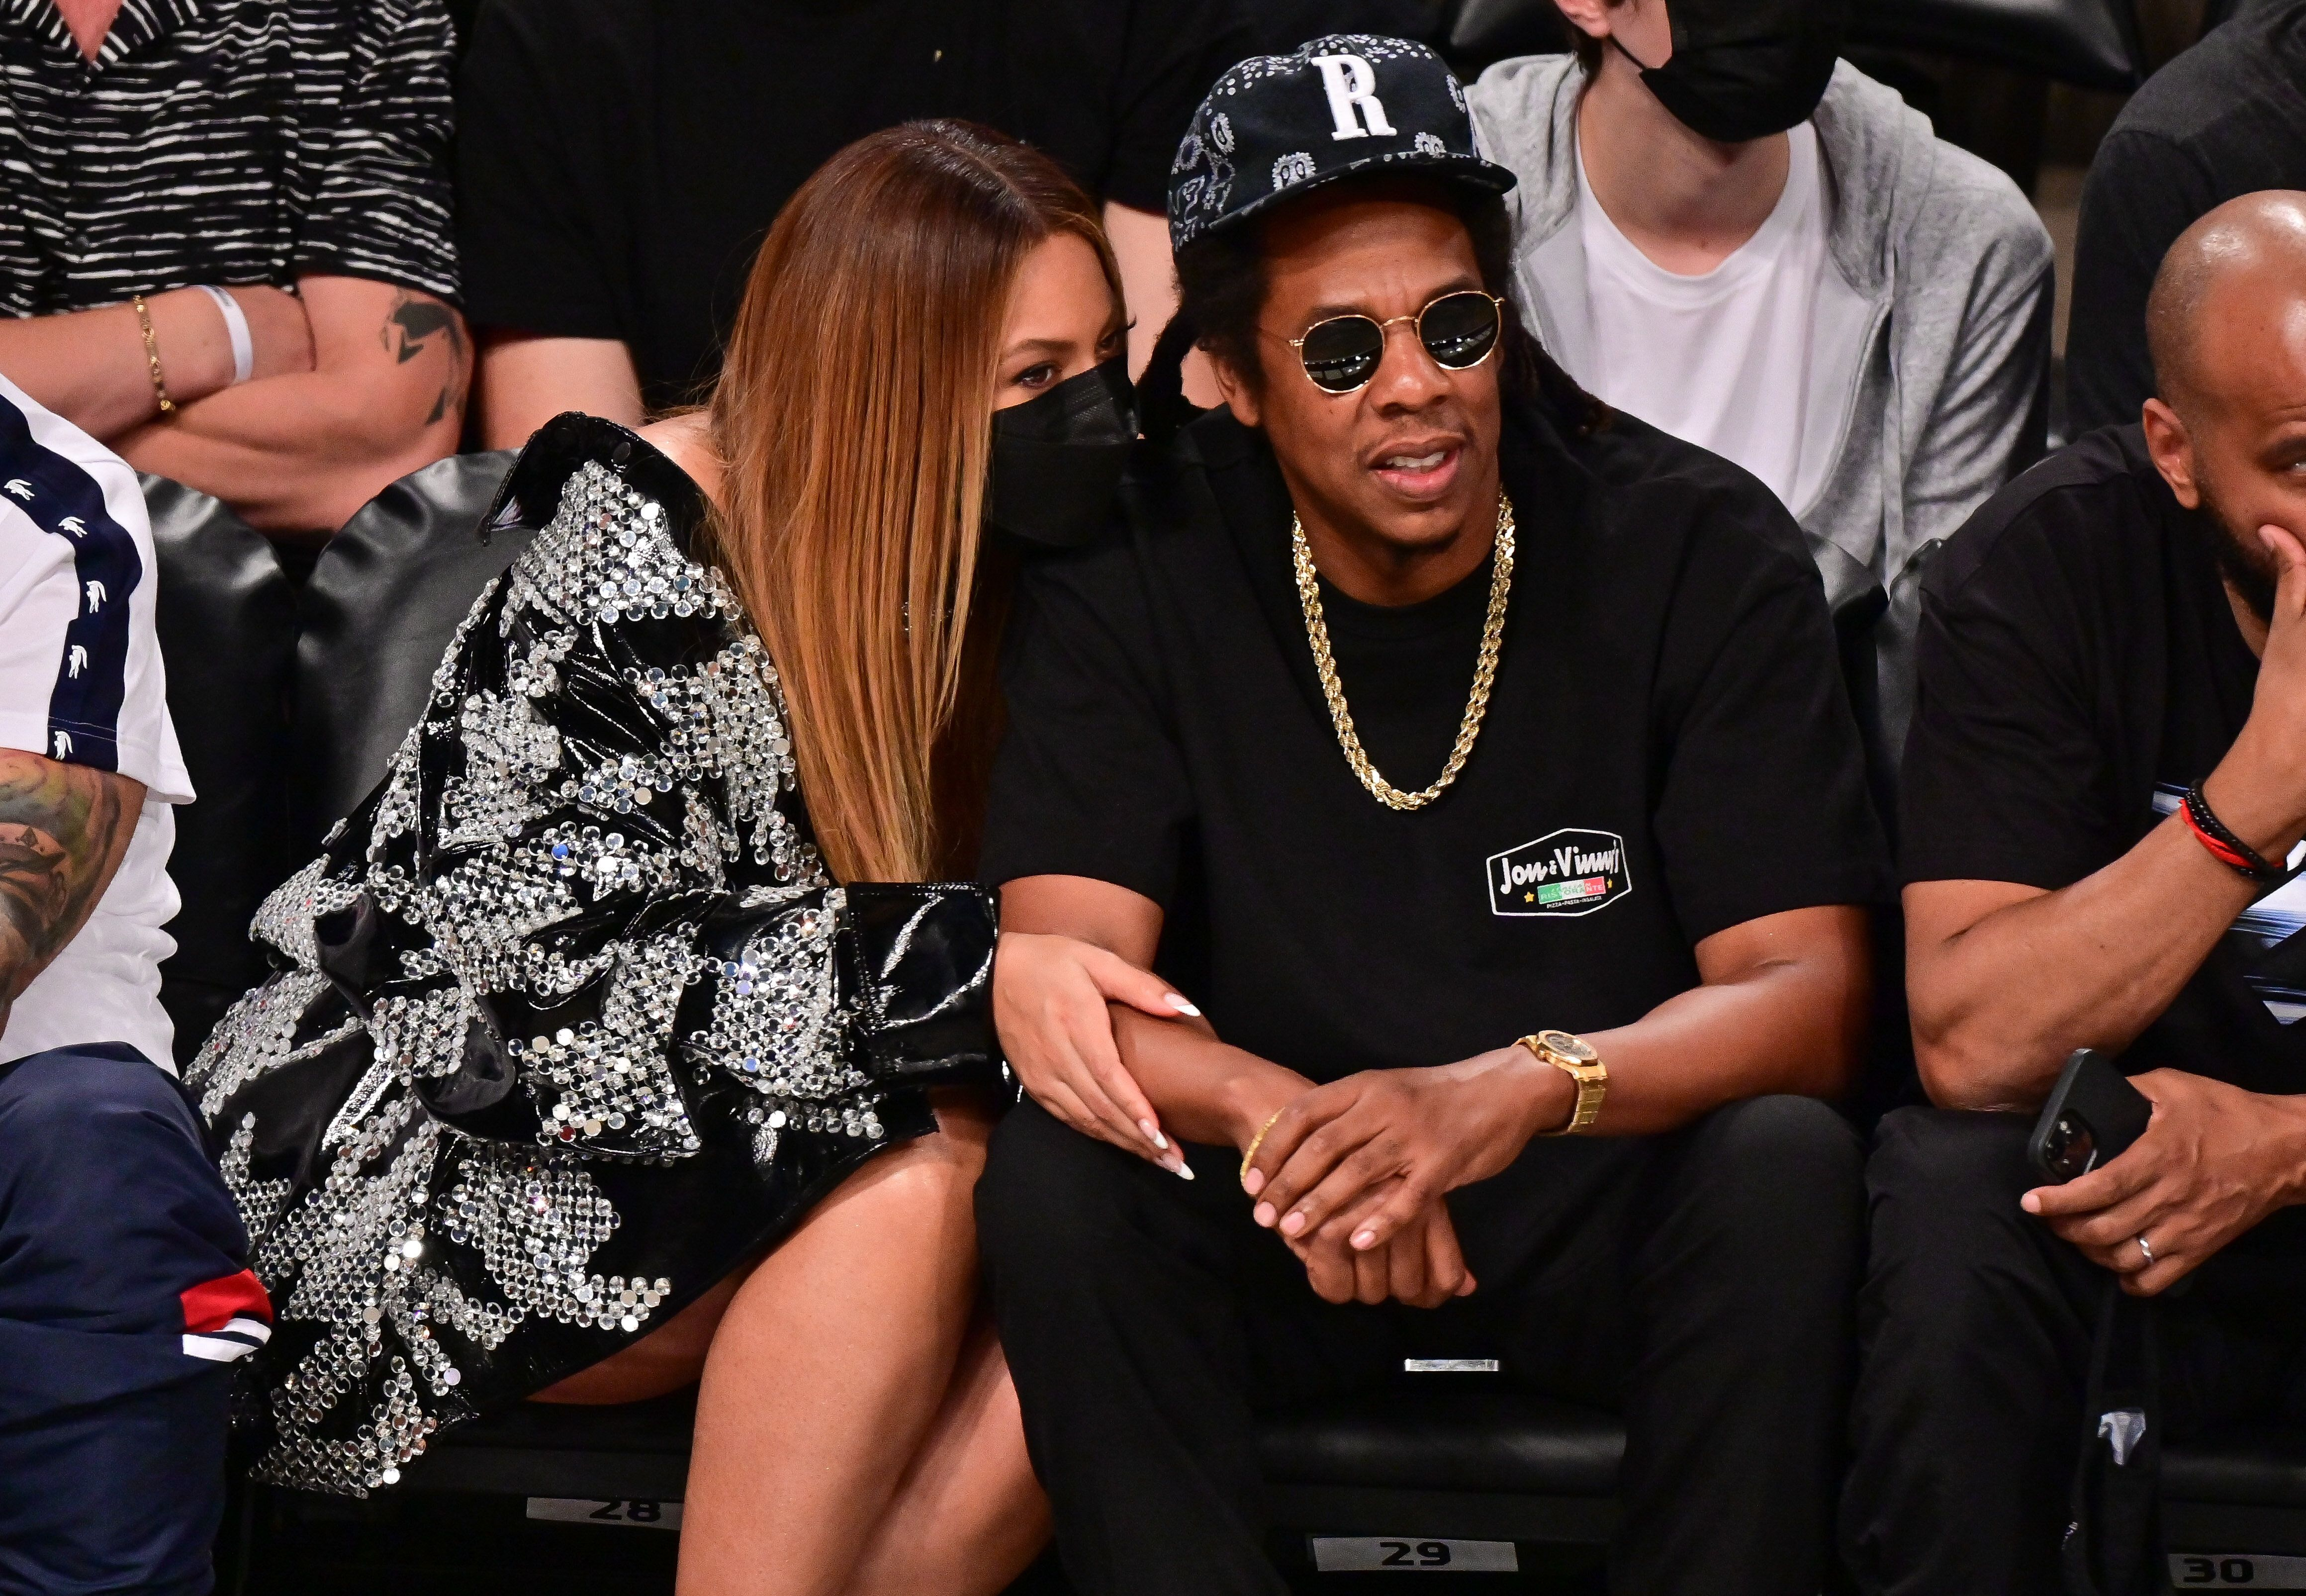 Beyonce and Jay-Z watch the game between the Brooklyn Nets and Milwaukee Bucks at the Barclays Center of Brooklyn last